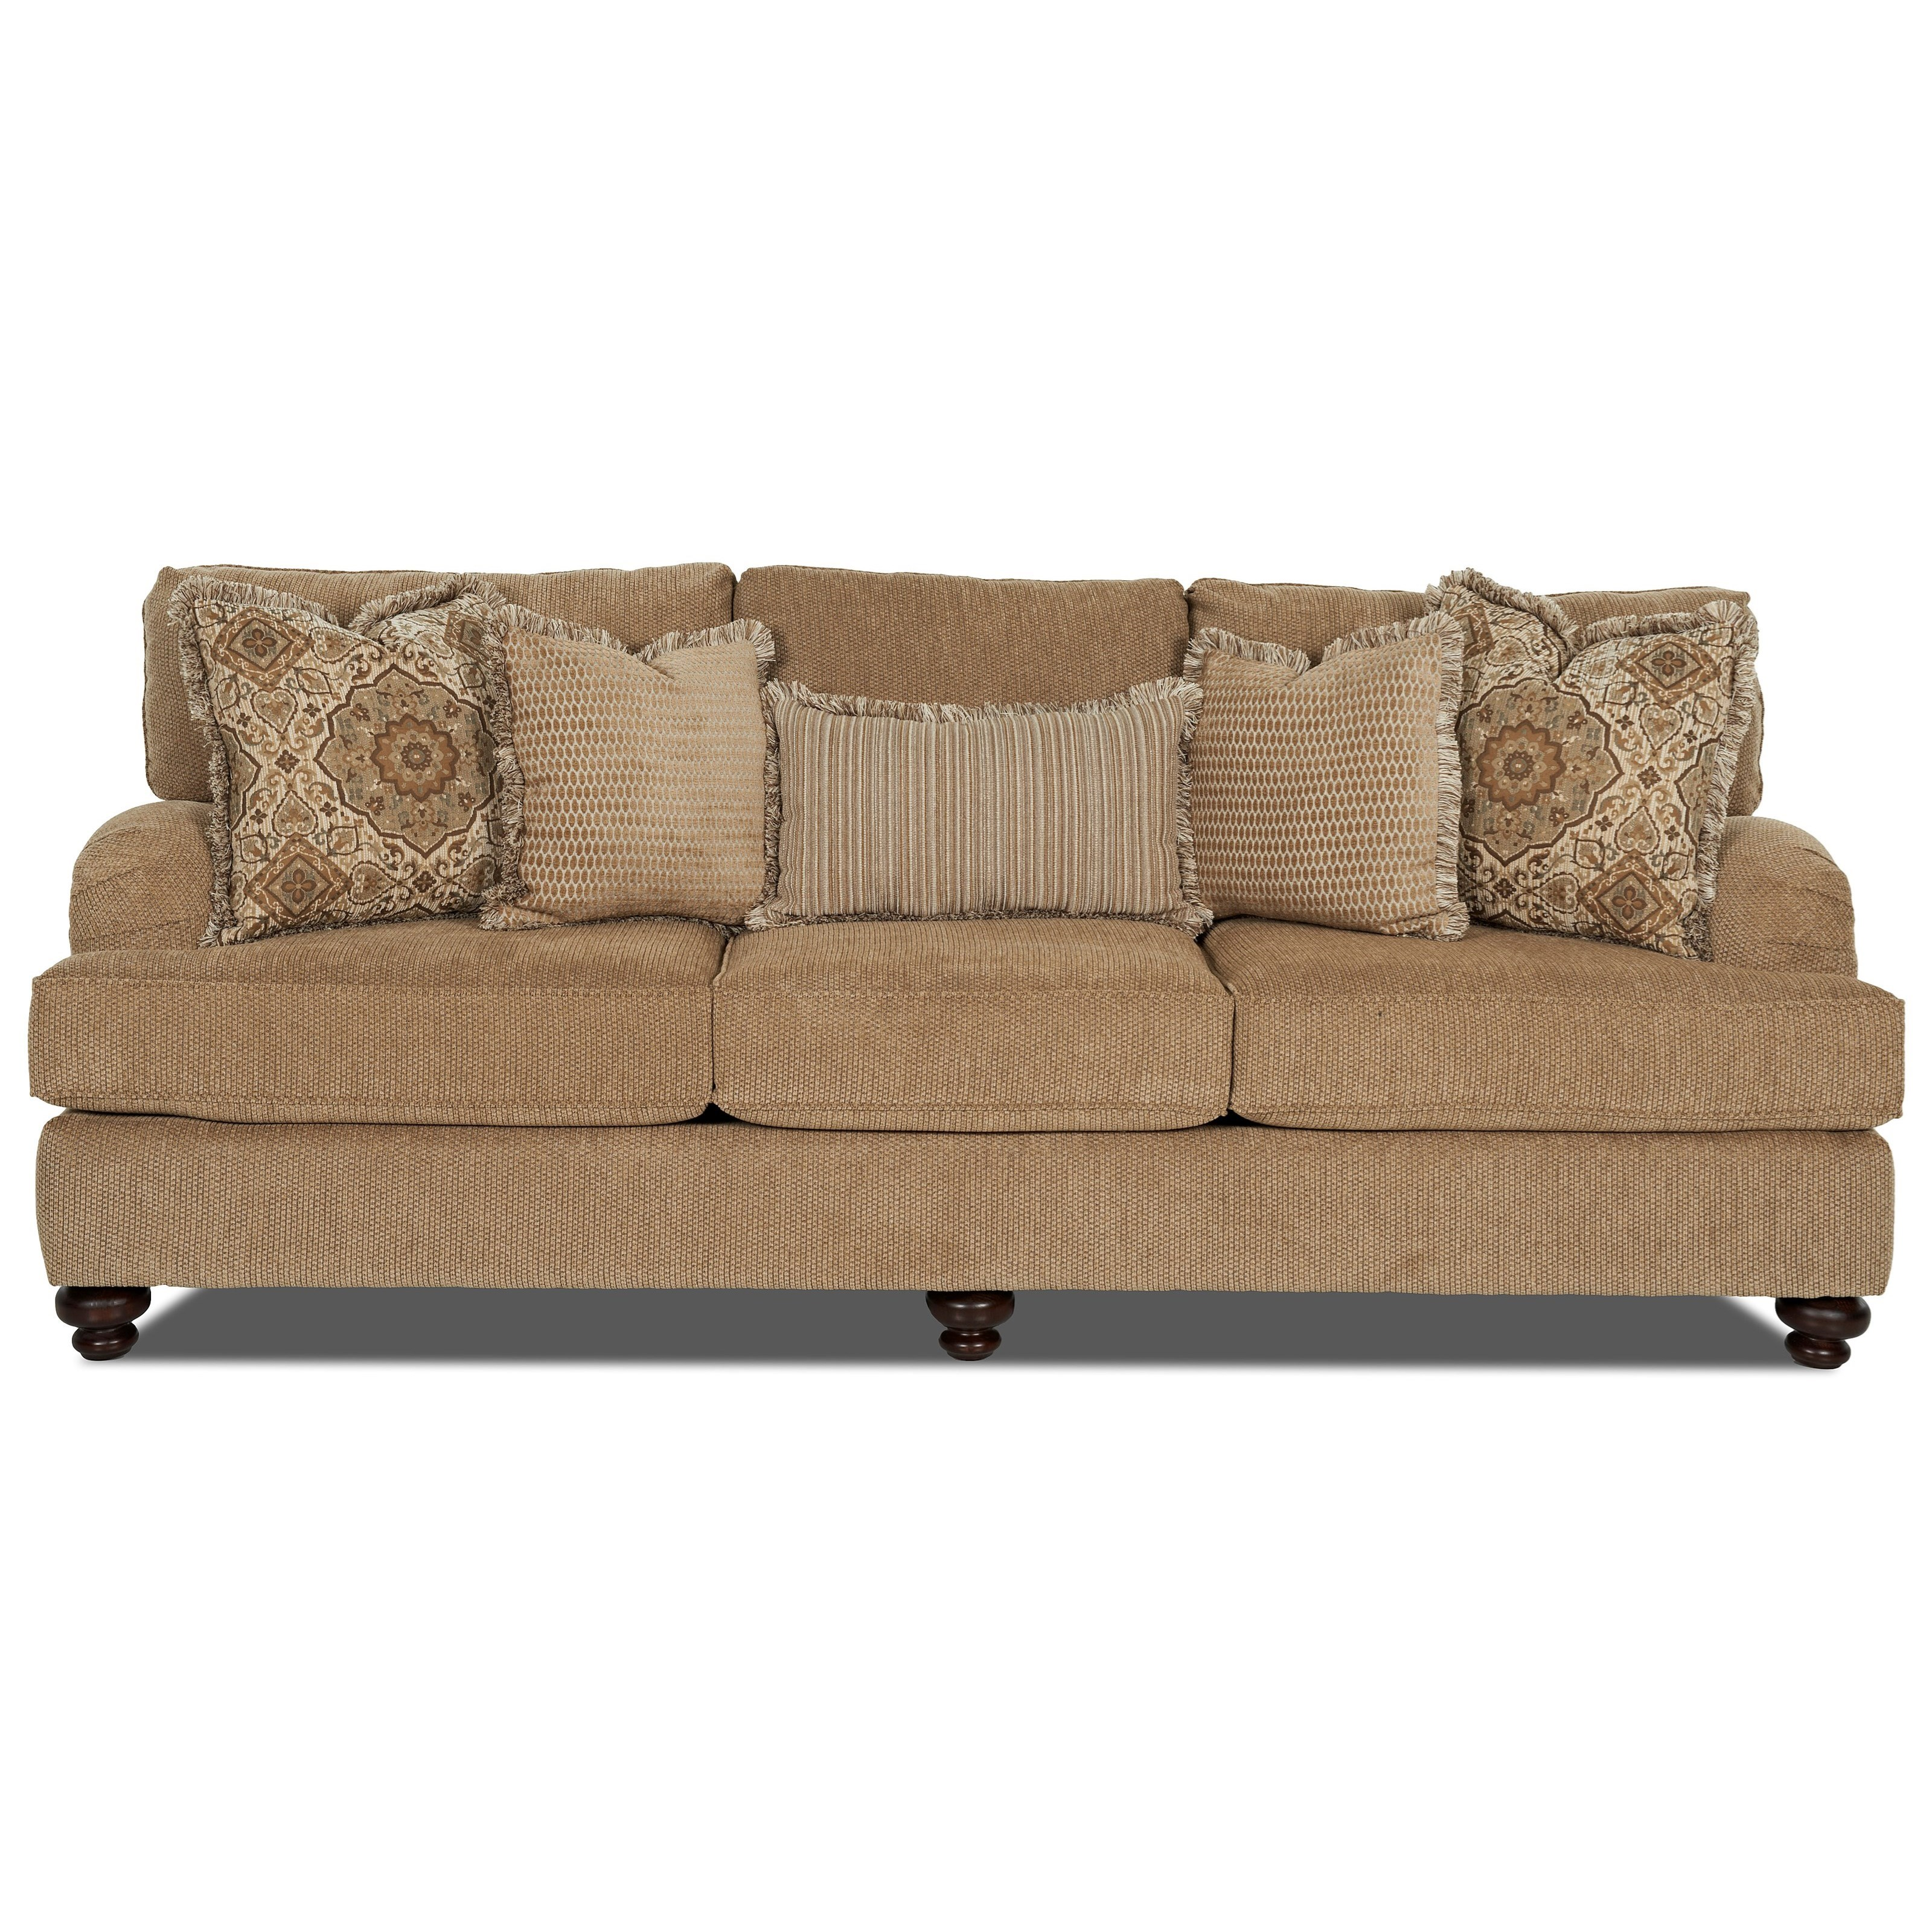 Klaussner declan traditional sofa with turned feet royal for Traditional couches